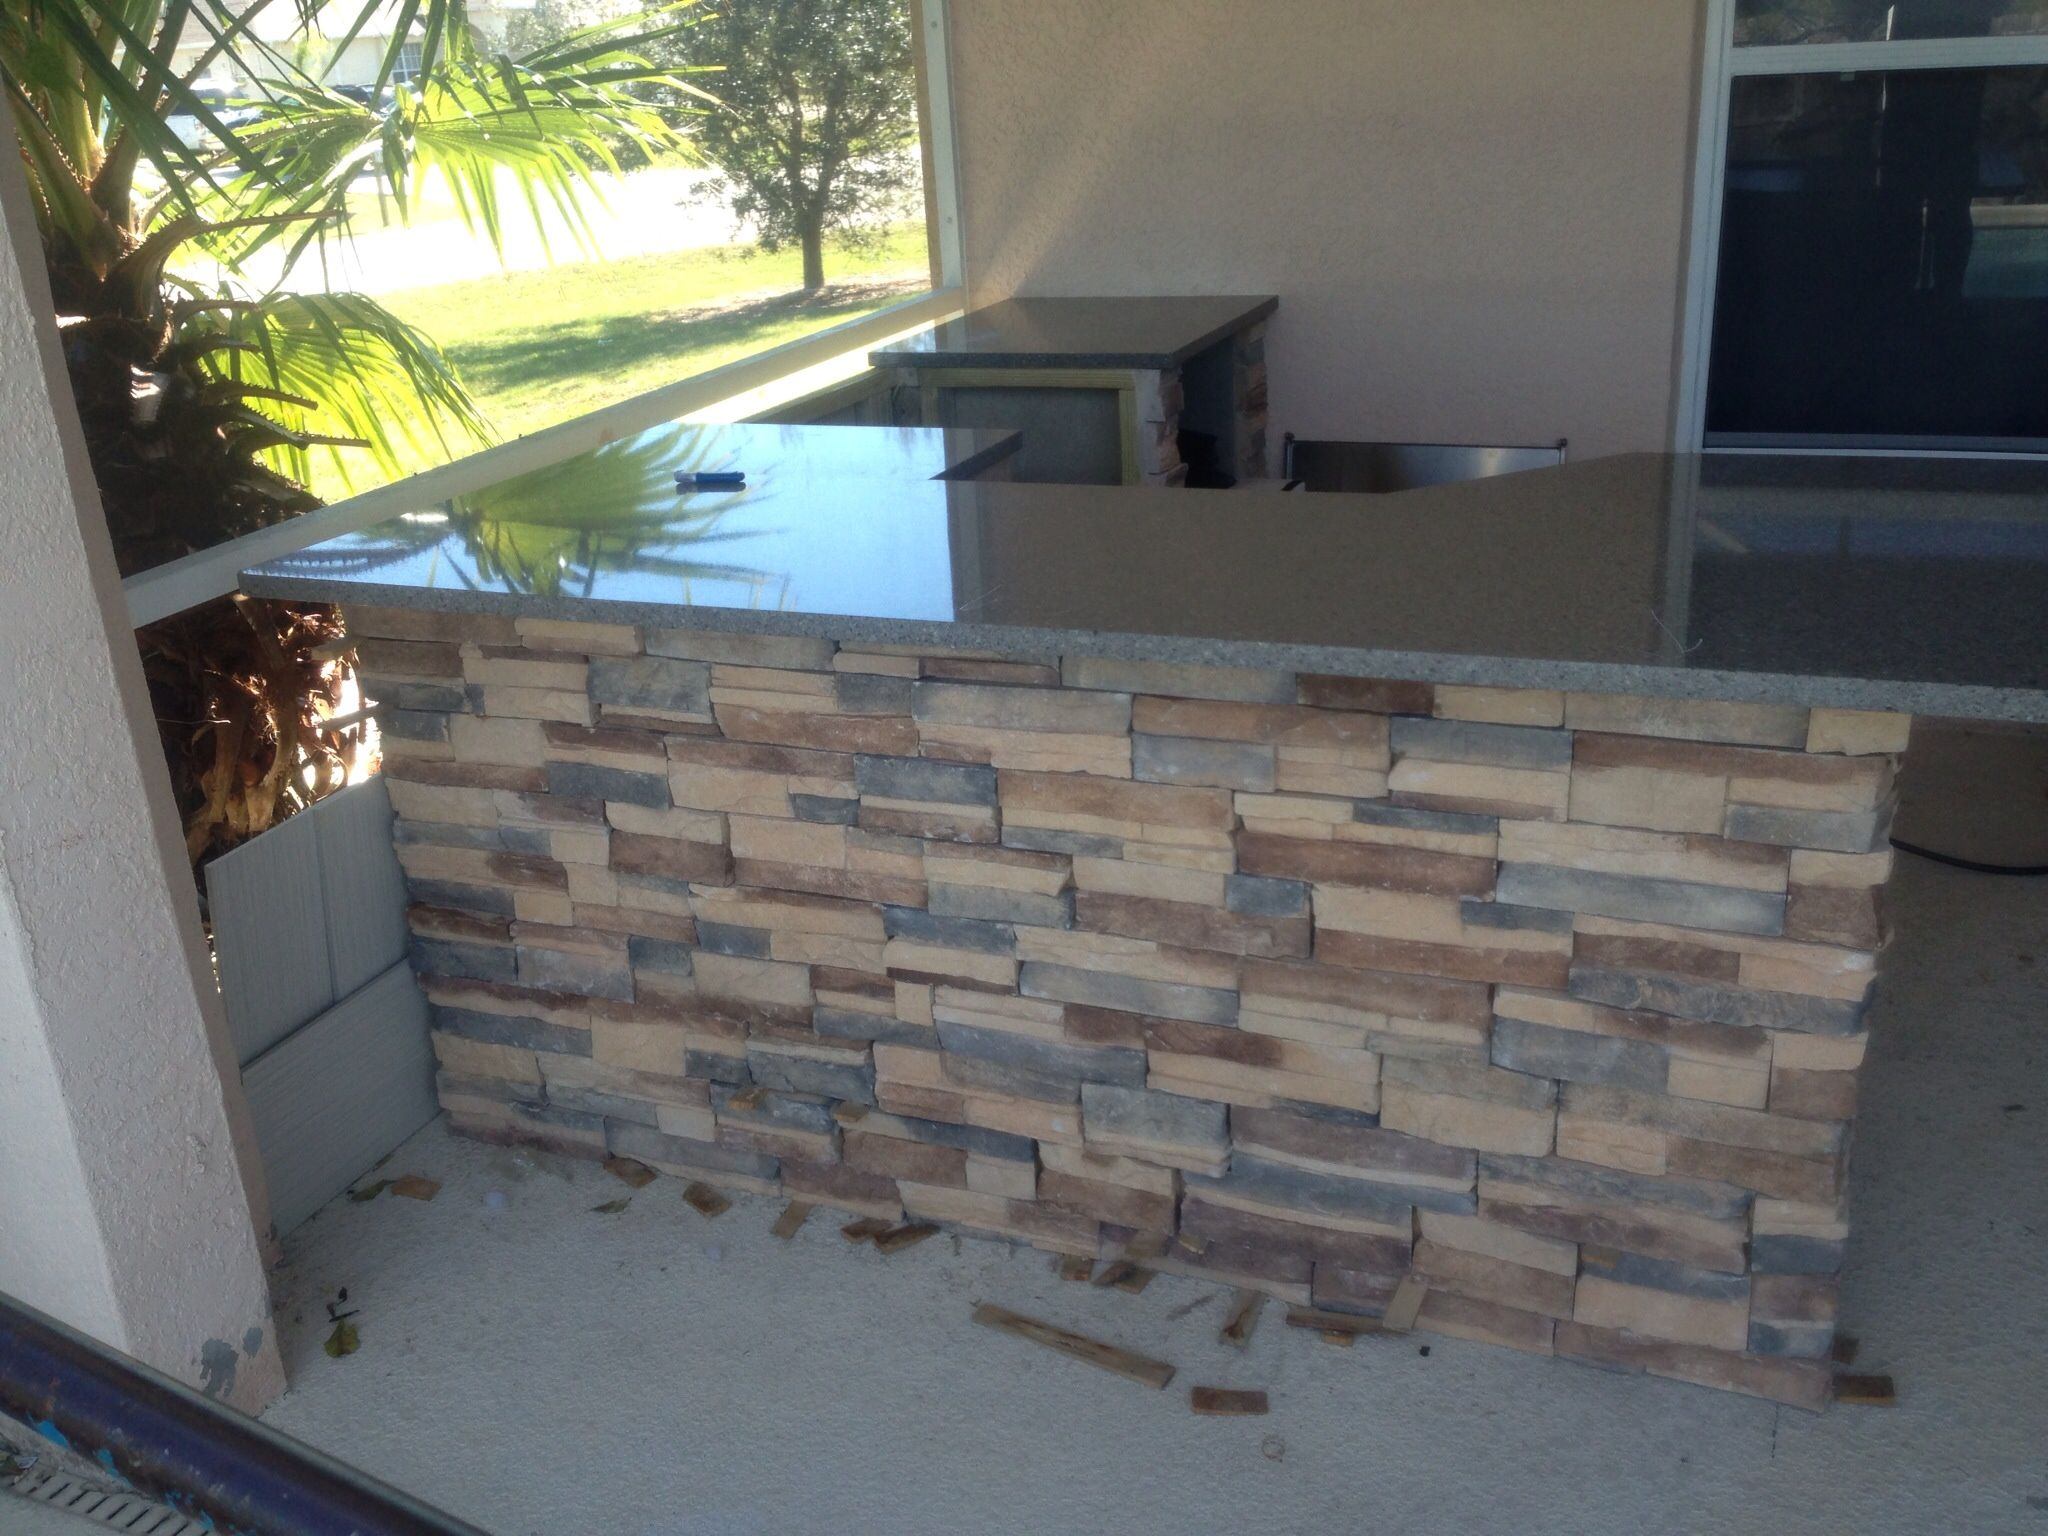 Outdoor Kitchen Installed on Existing Lanai  Olde Florida